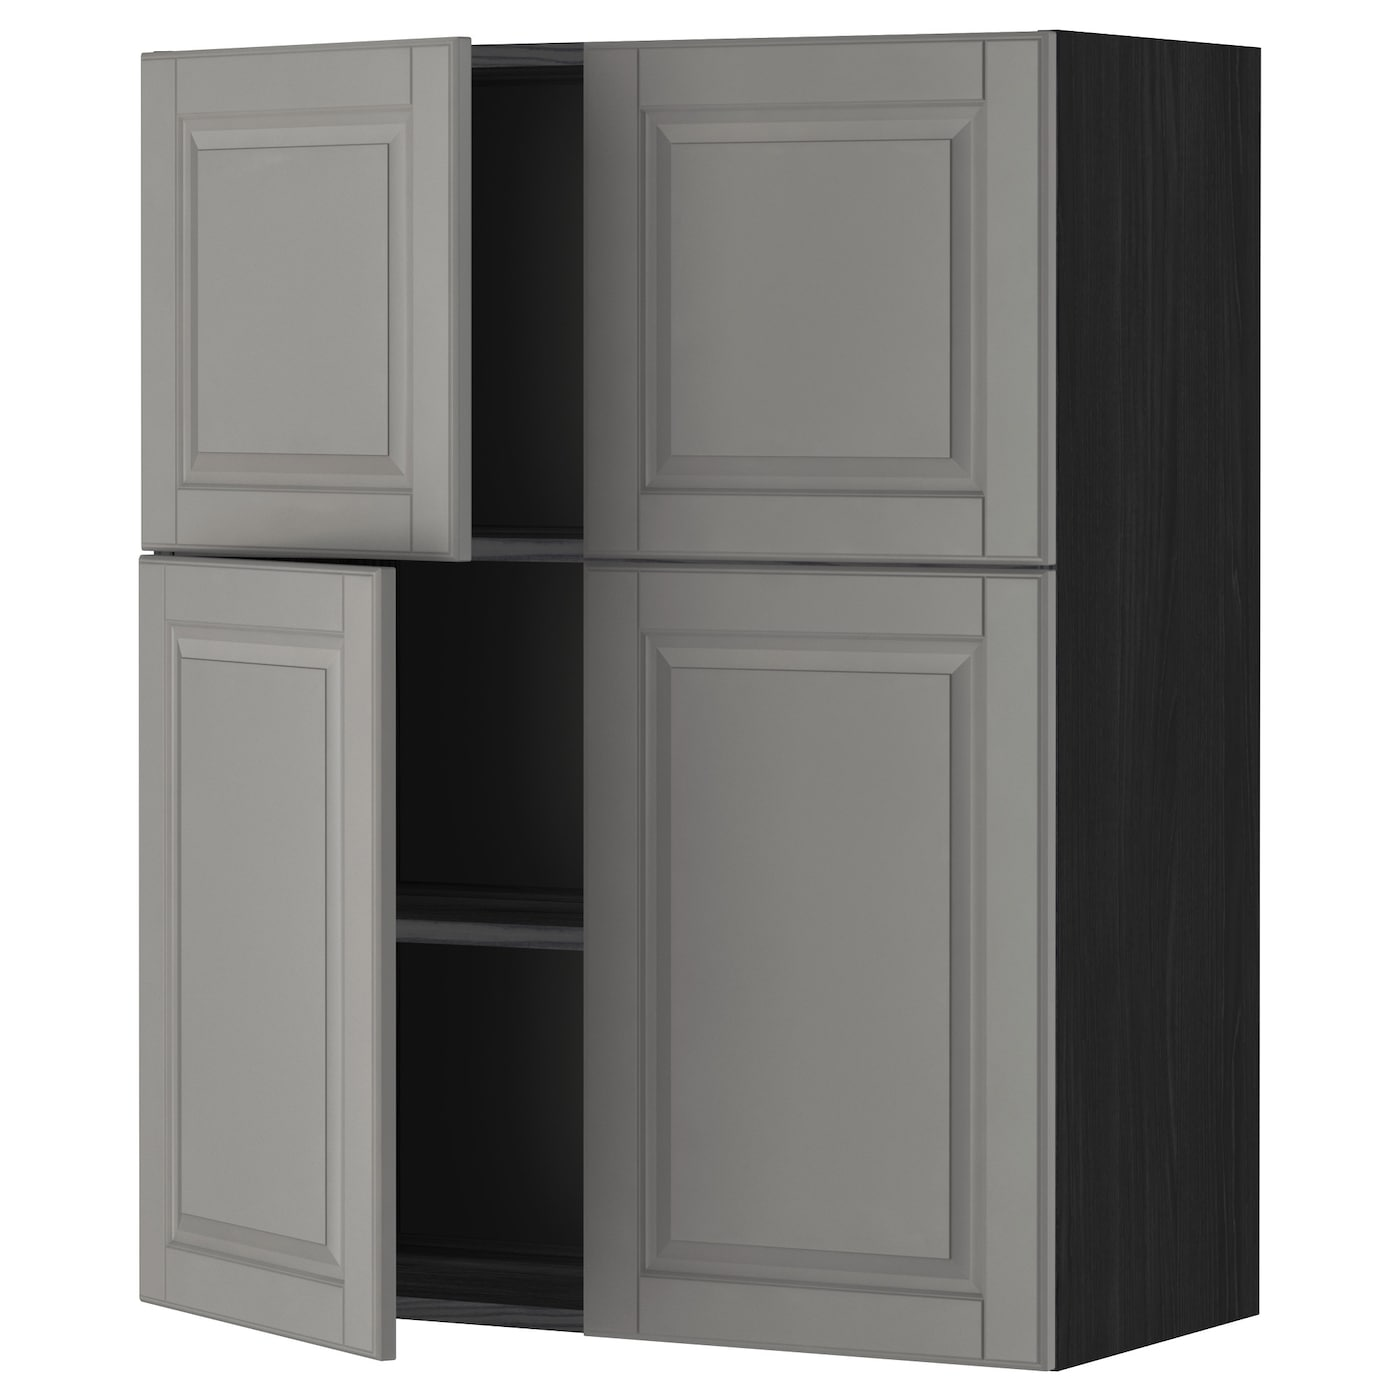 IKEA METOD wall cabinet with shelves/4 doors Sturdy frame construction, 18 mm thick.